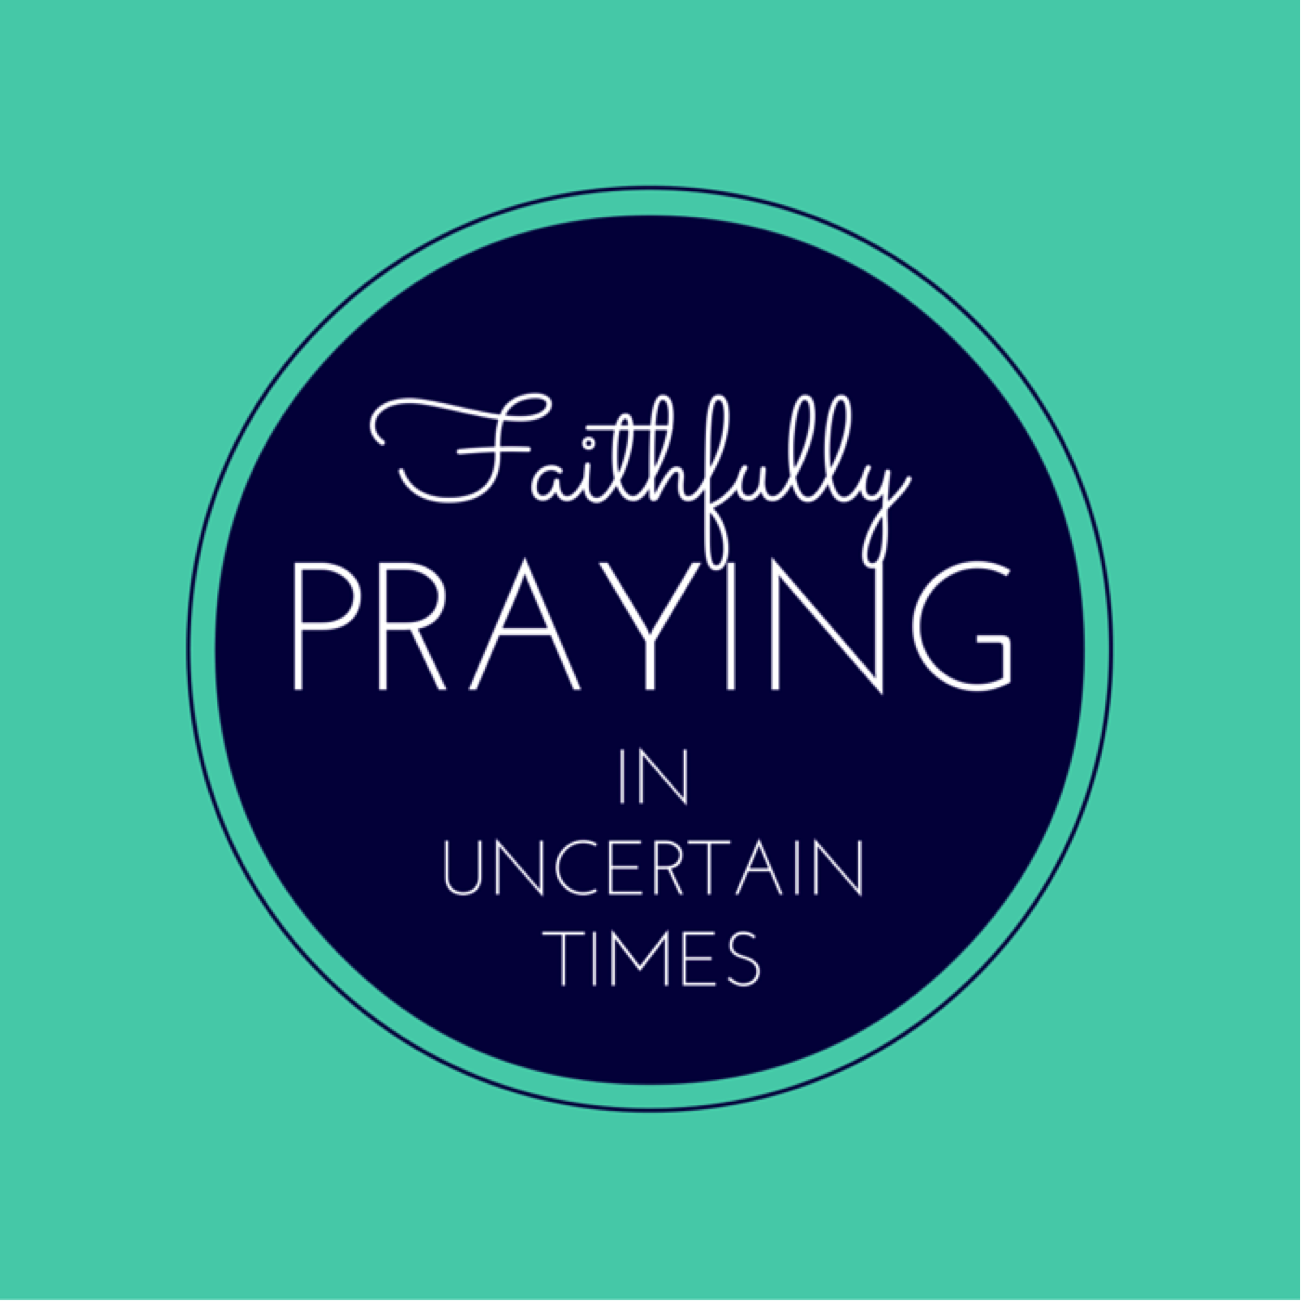 Promises_of_provision_praying_faithfully_in_uncertain_times